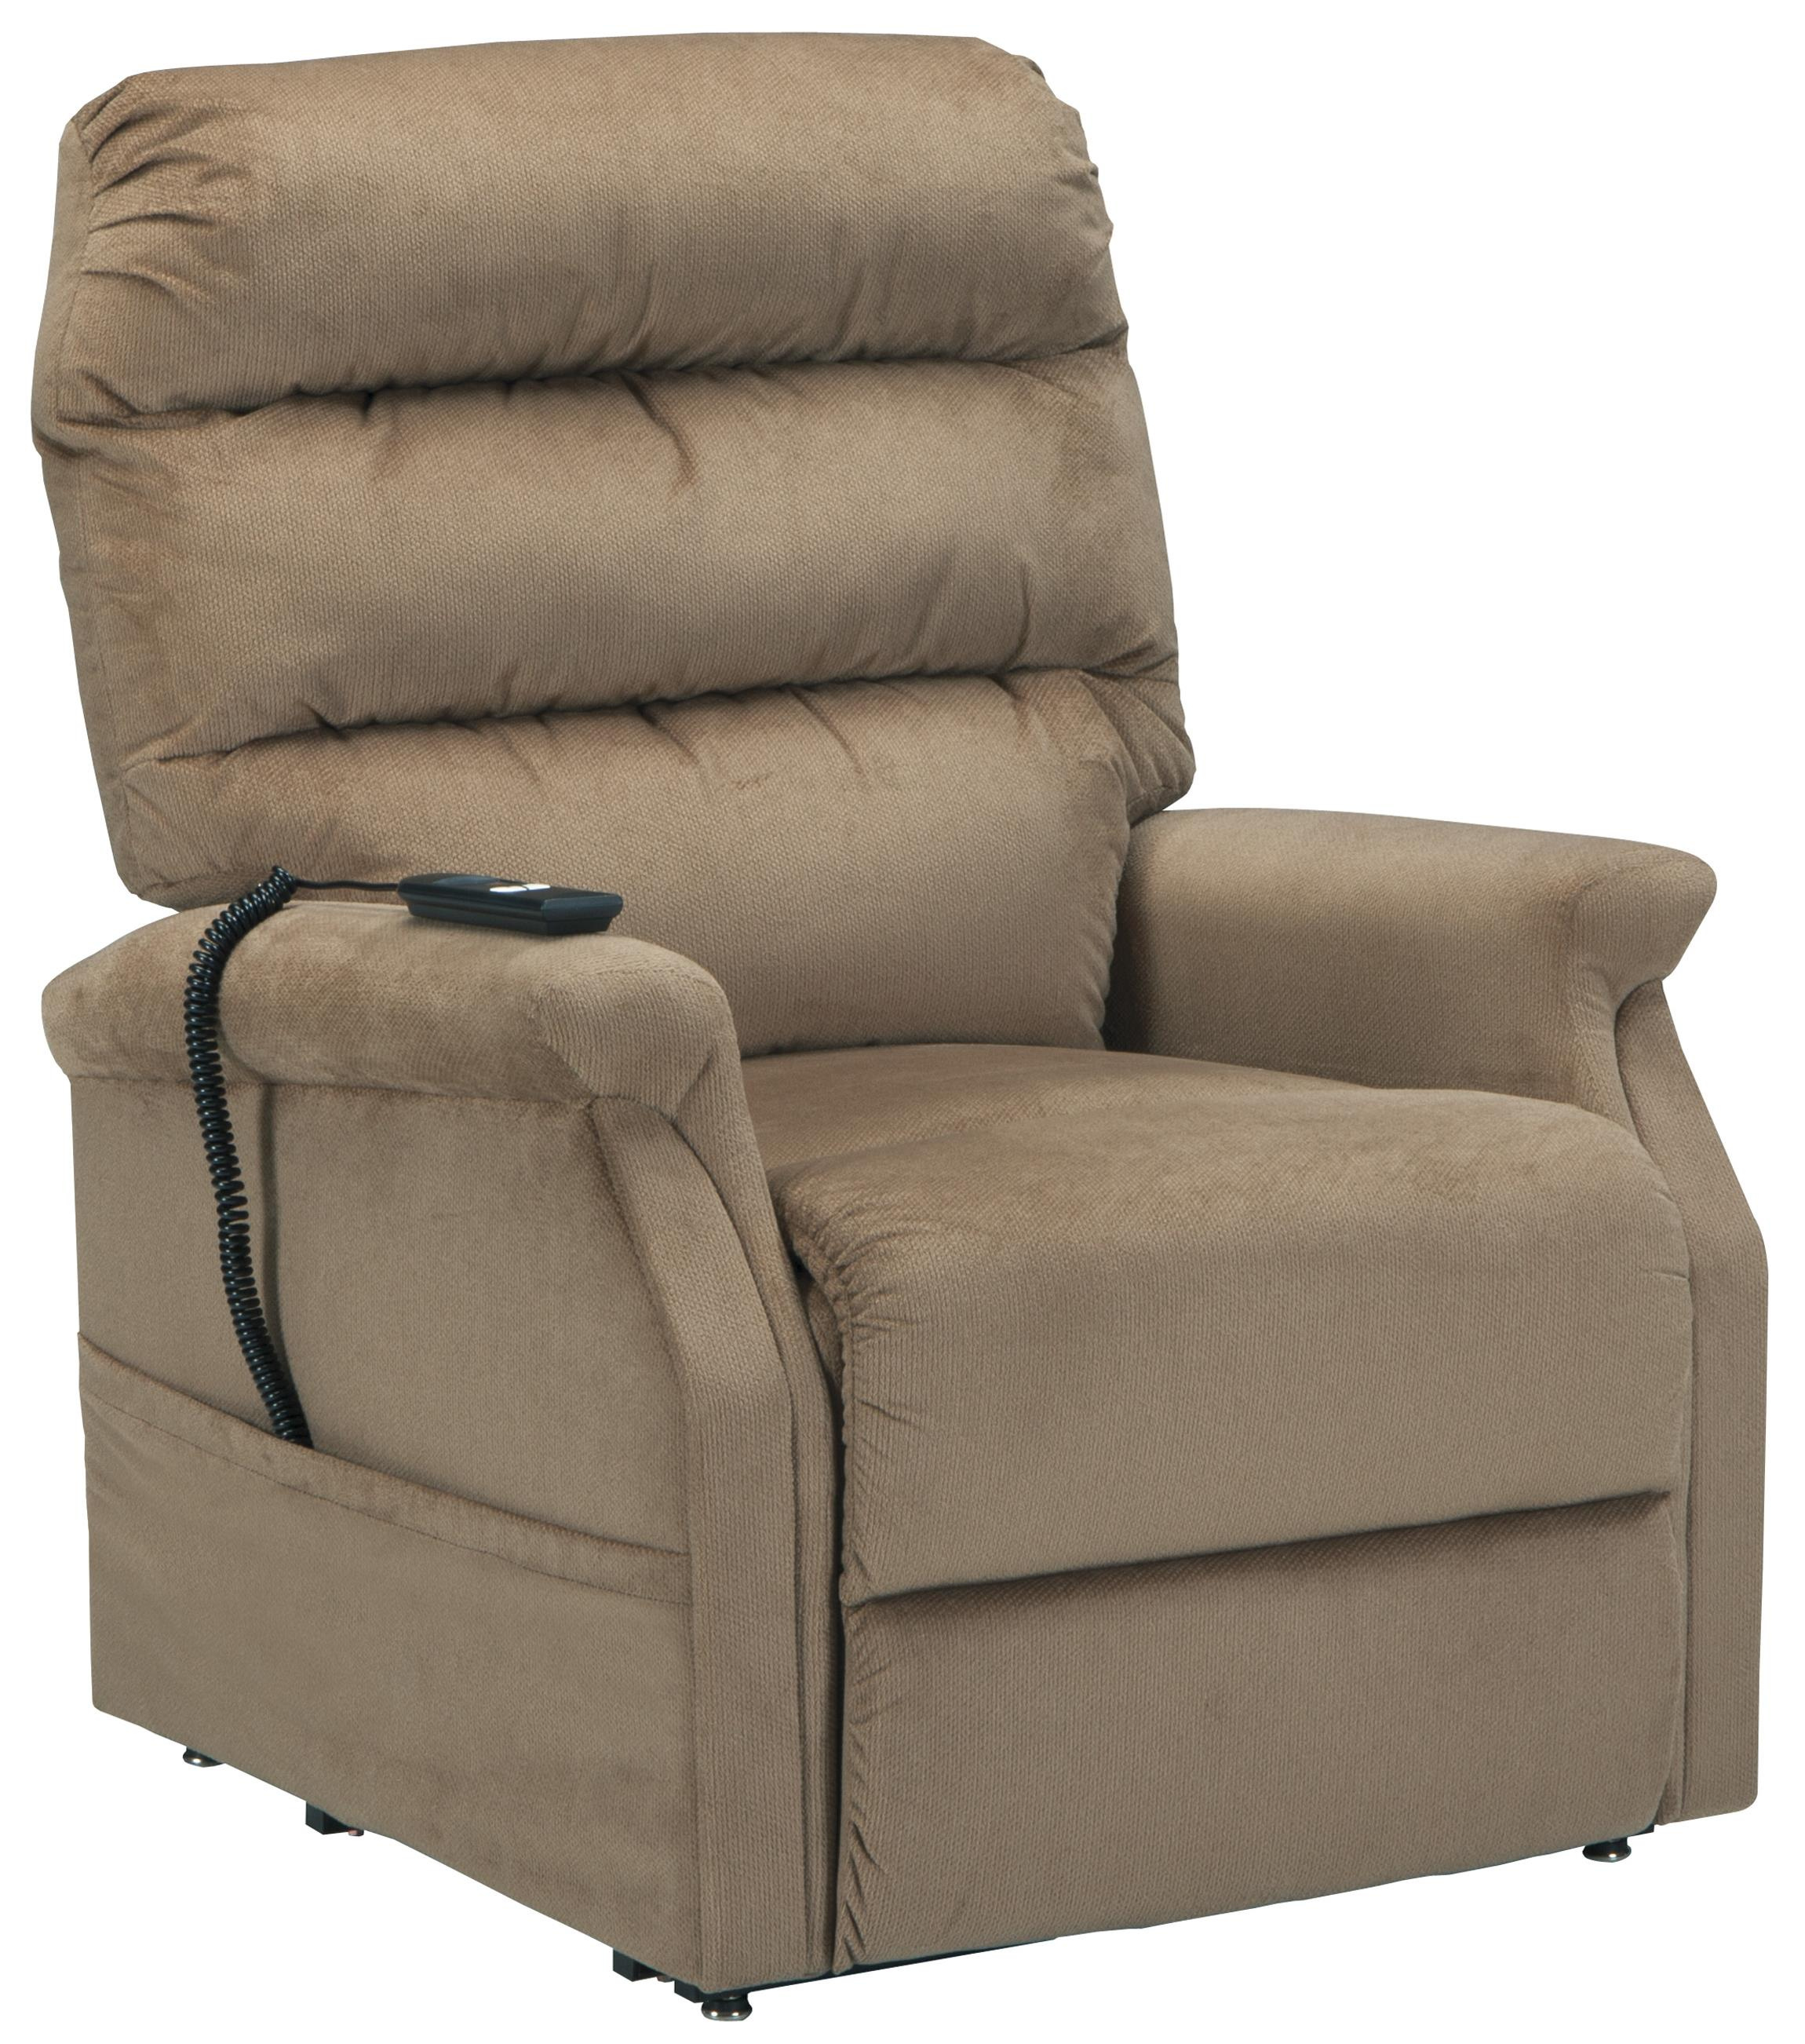 Signature Design by Ashley Brenyth Power Lift Recliner - Item Number: 7460312